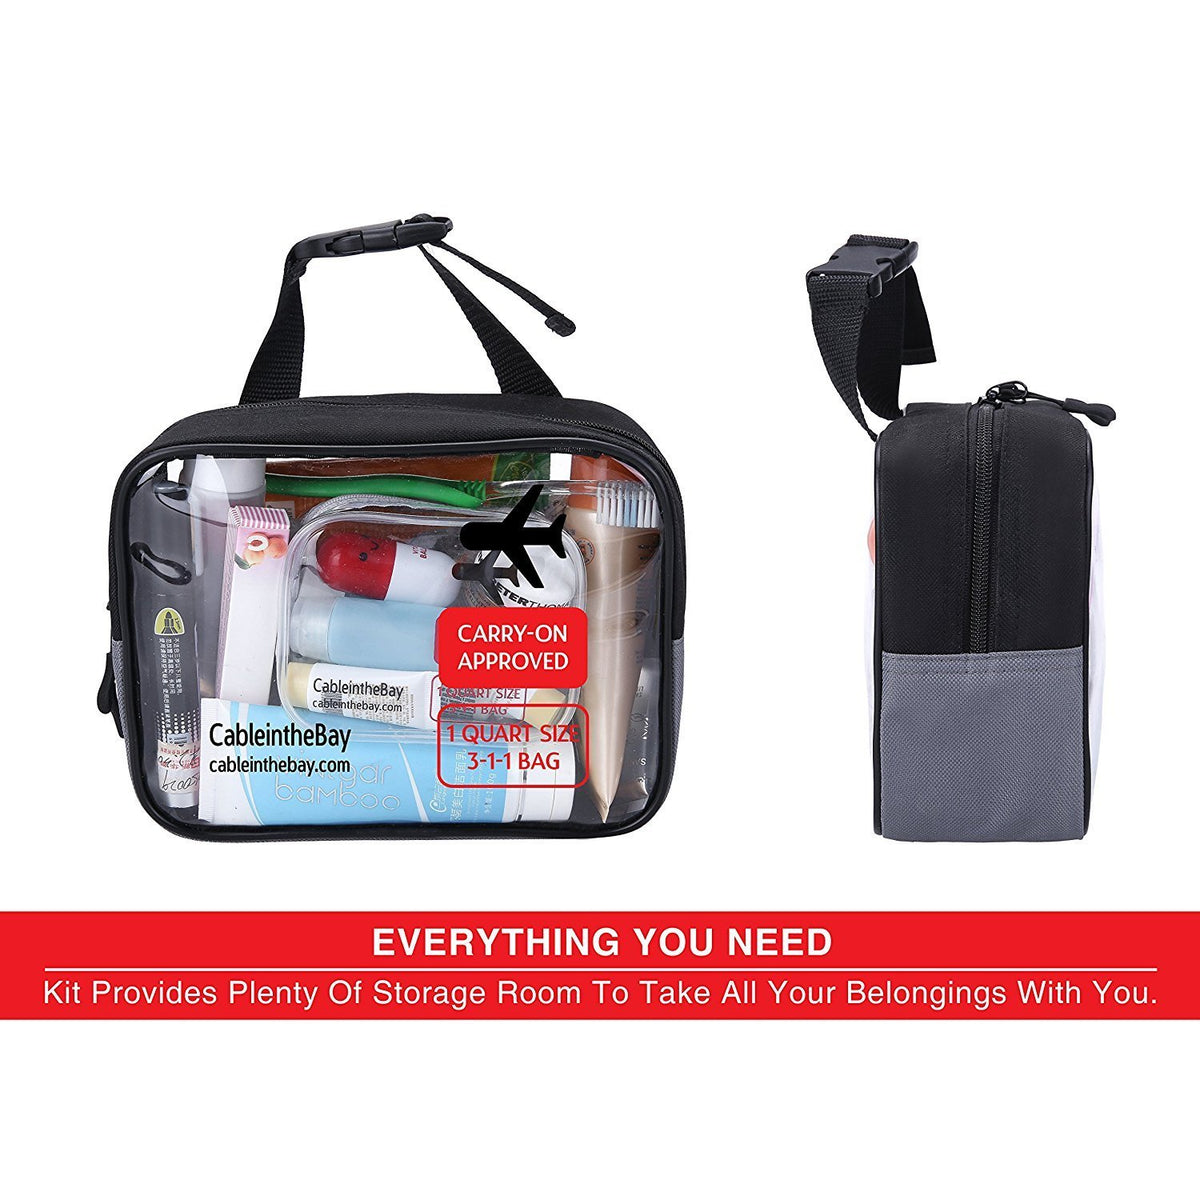 TSA Approved Clear Travel HangingToiletry Bag+ Carrying Handle|Quart Size with Zipper|Airport Airline Compliant Bag|Carry-On for Liquids/ Bottles|Men's/Women's 3-1-1 Kit+Travel EBOOK